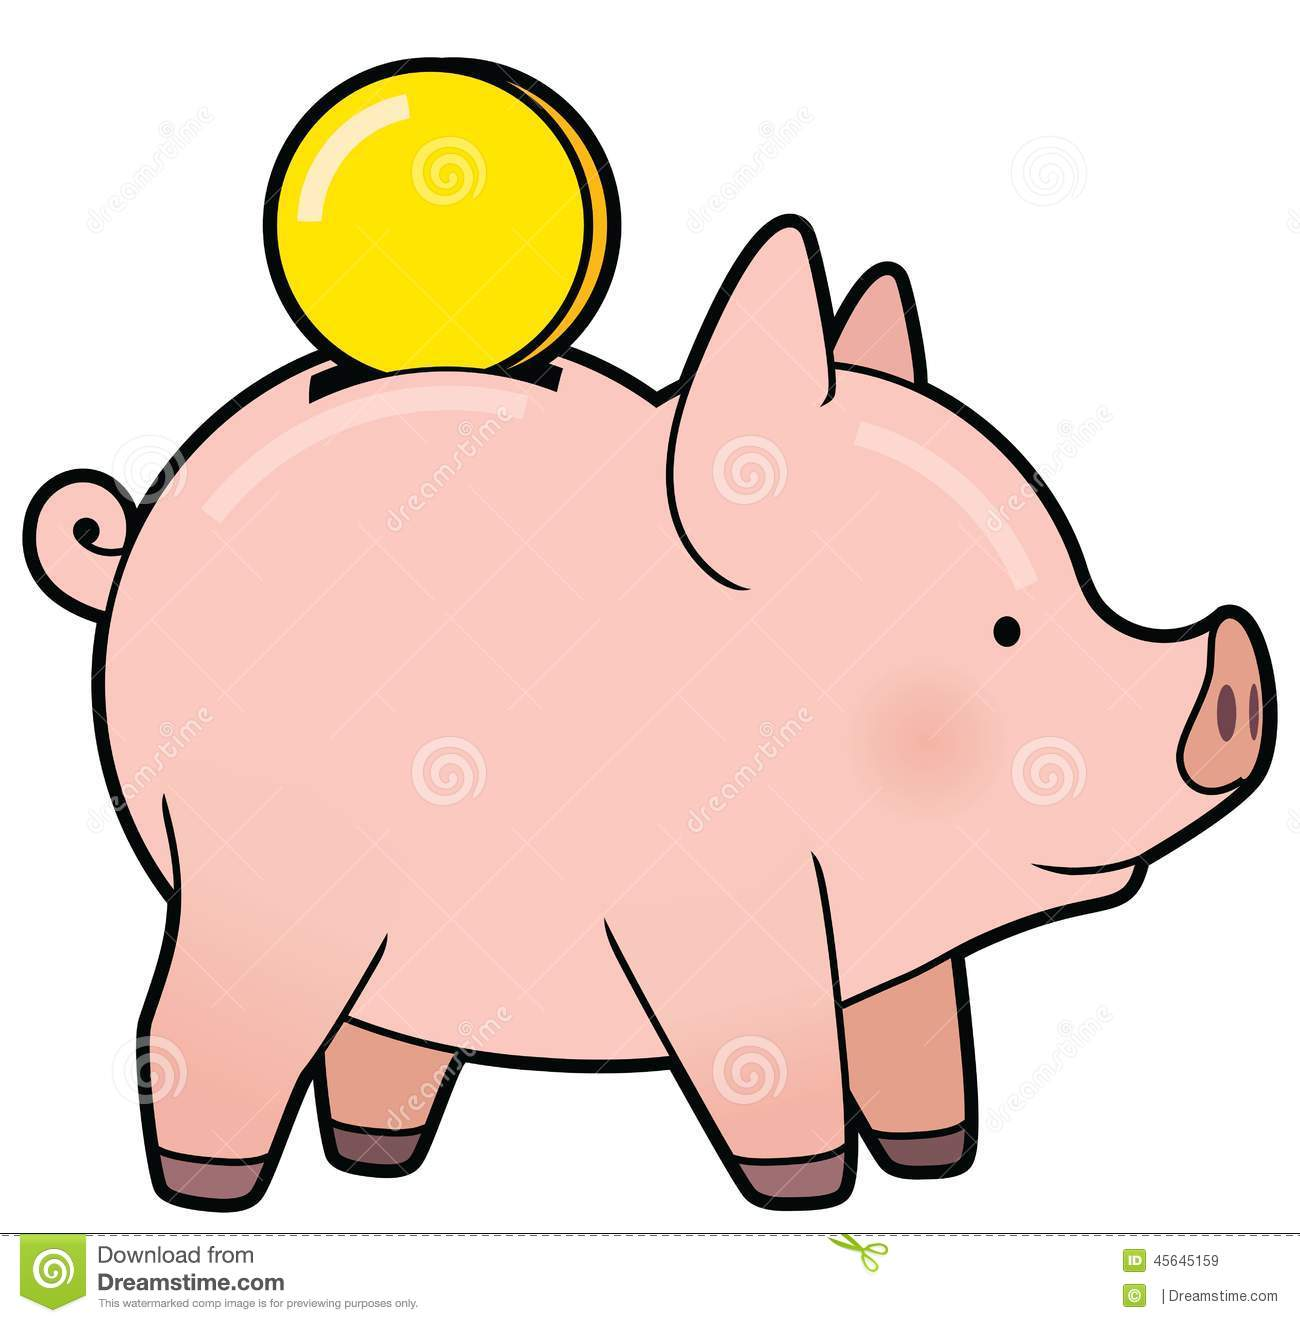 Clipart coin with a pig on it picture free download Cute Piggy Bank Clipart | Free download best Cute Piggy Bank Clipart ... picture free download